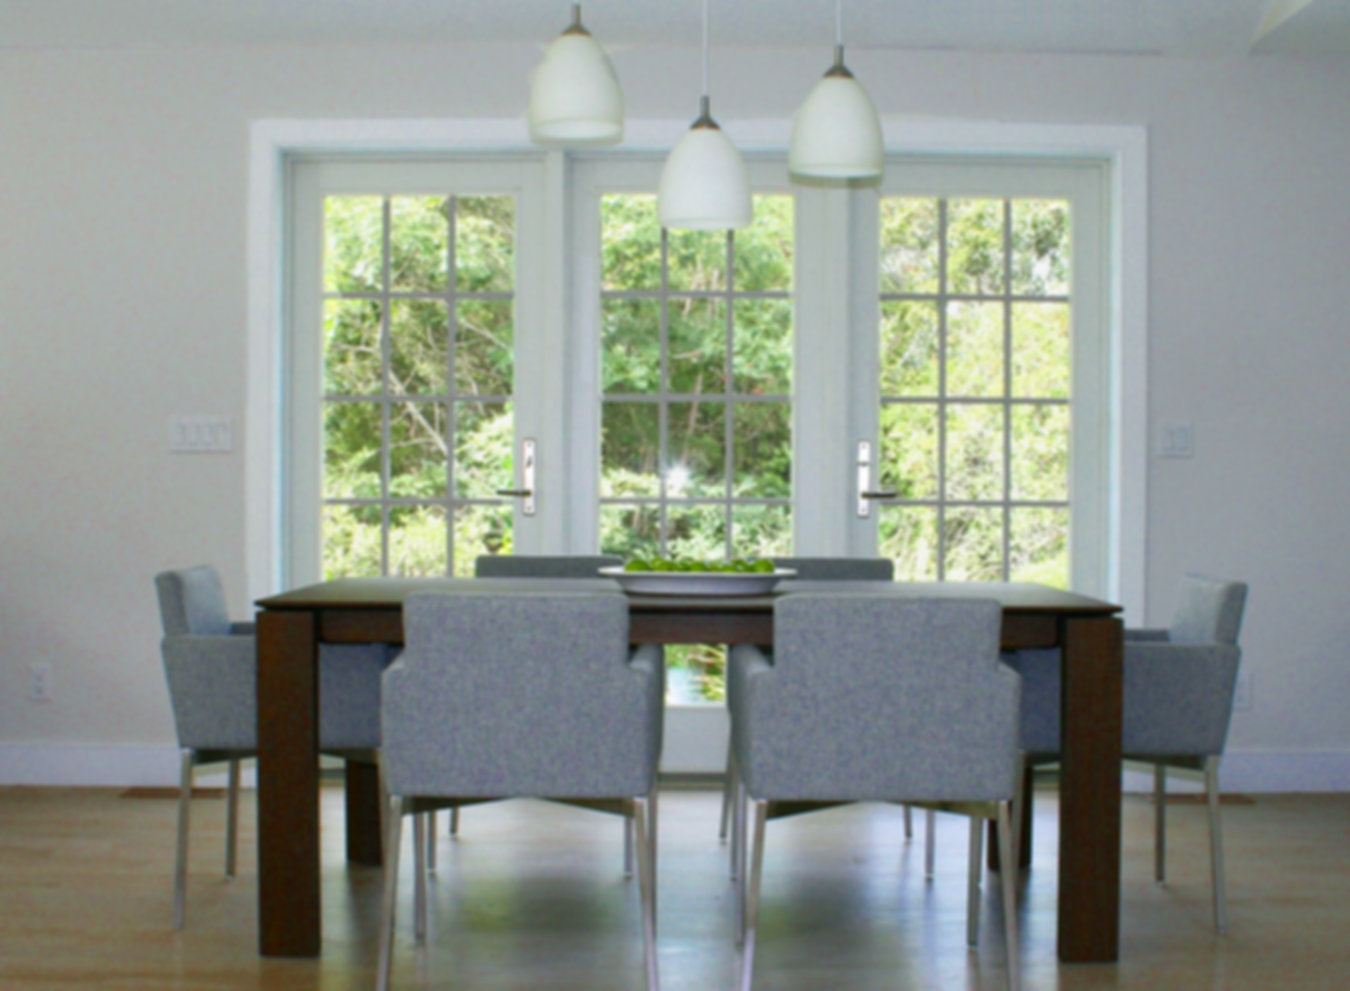 modern wood dining table, gray dining chairs, modern dinin chairs, white pendant fixture, gray pendant lighting, gray wood floor, French doors